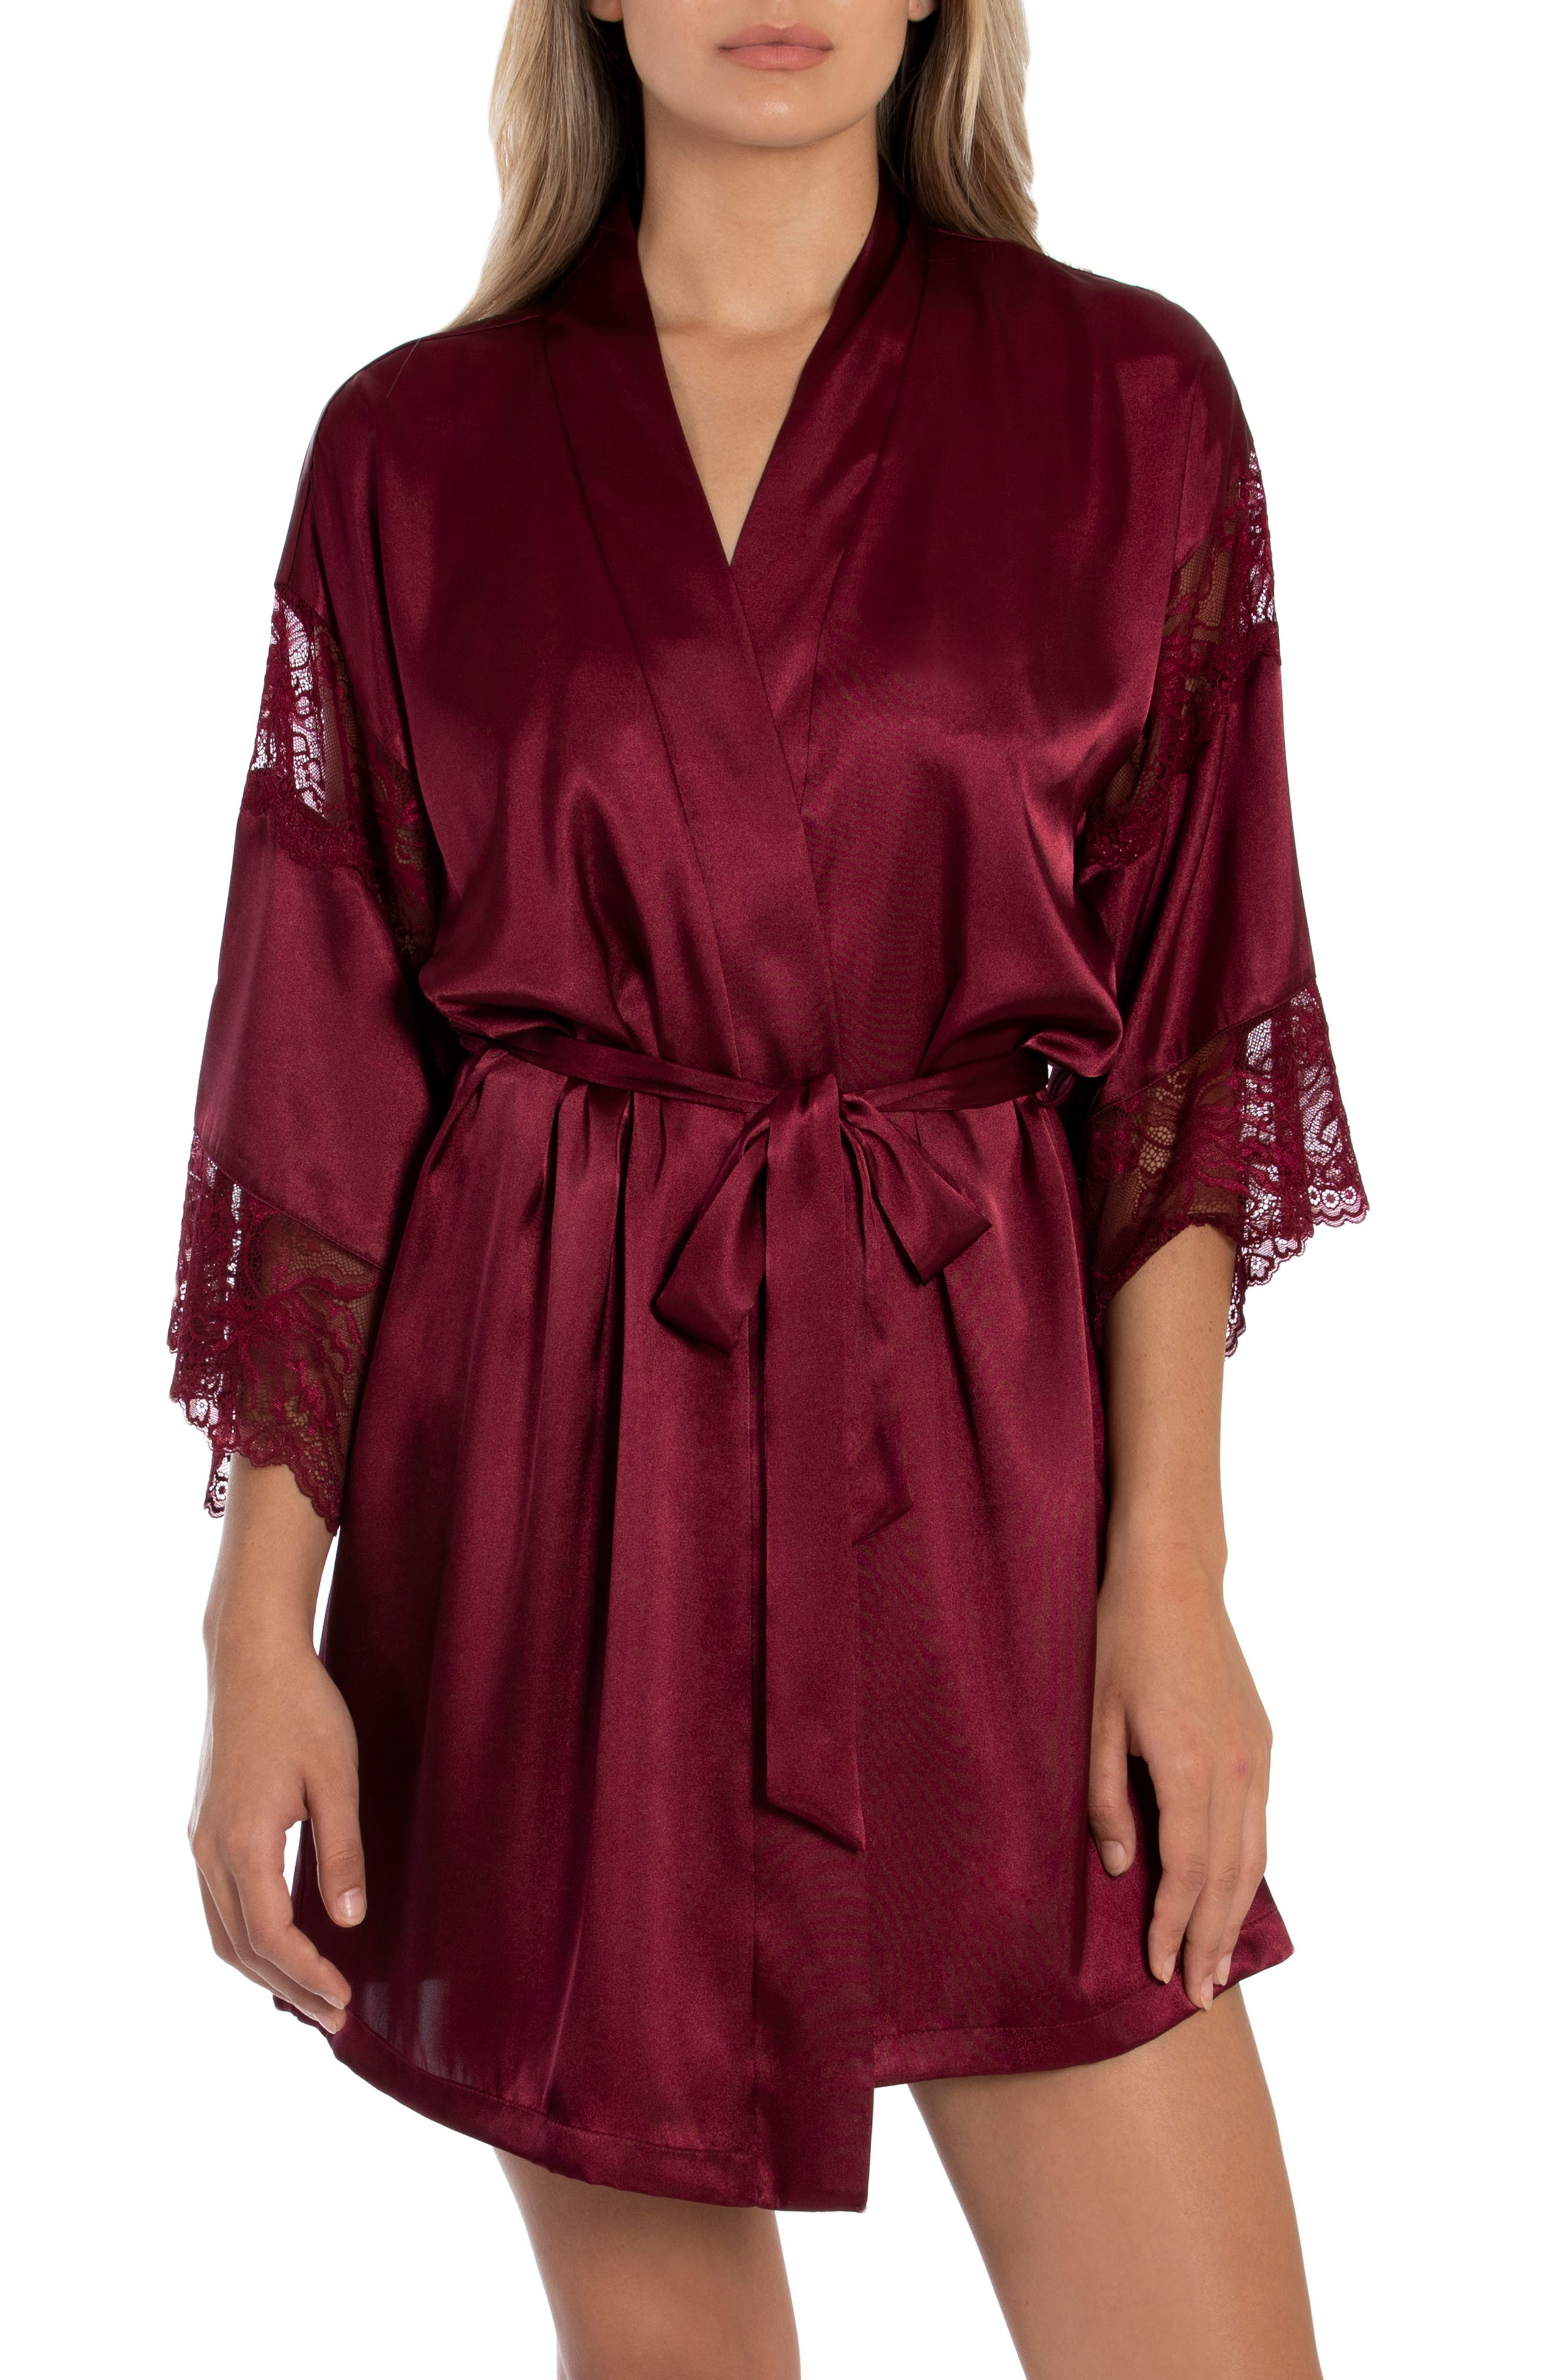 Details about  /**IN BLOOM BY JONQUIL RED ROBE WITH BLACK FLORAL DESIGN VELVET CUFFS LONG LENGTH